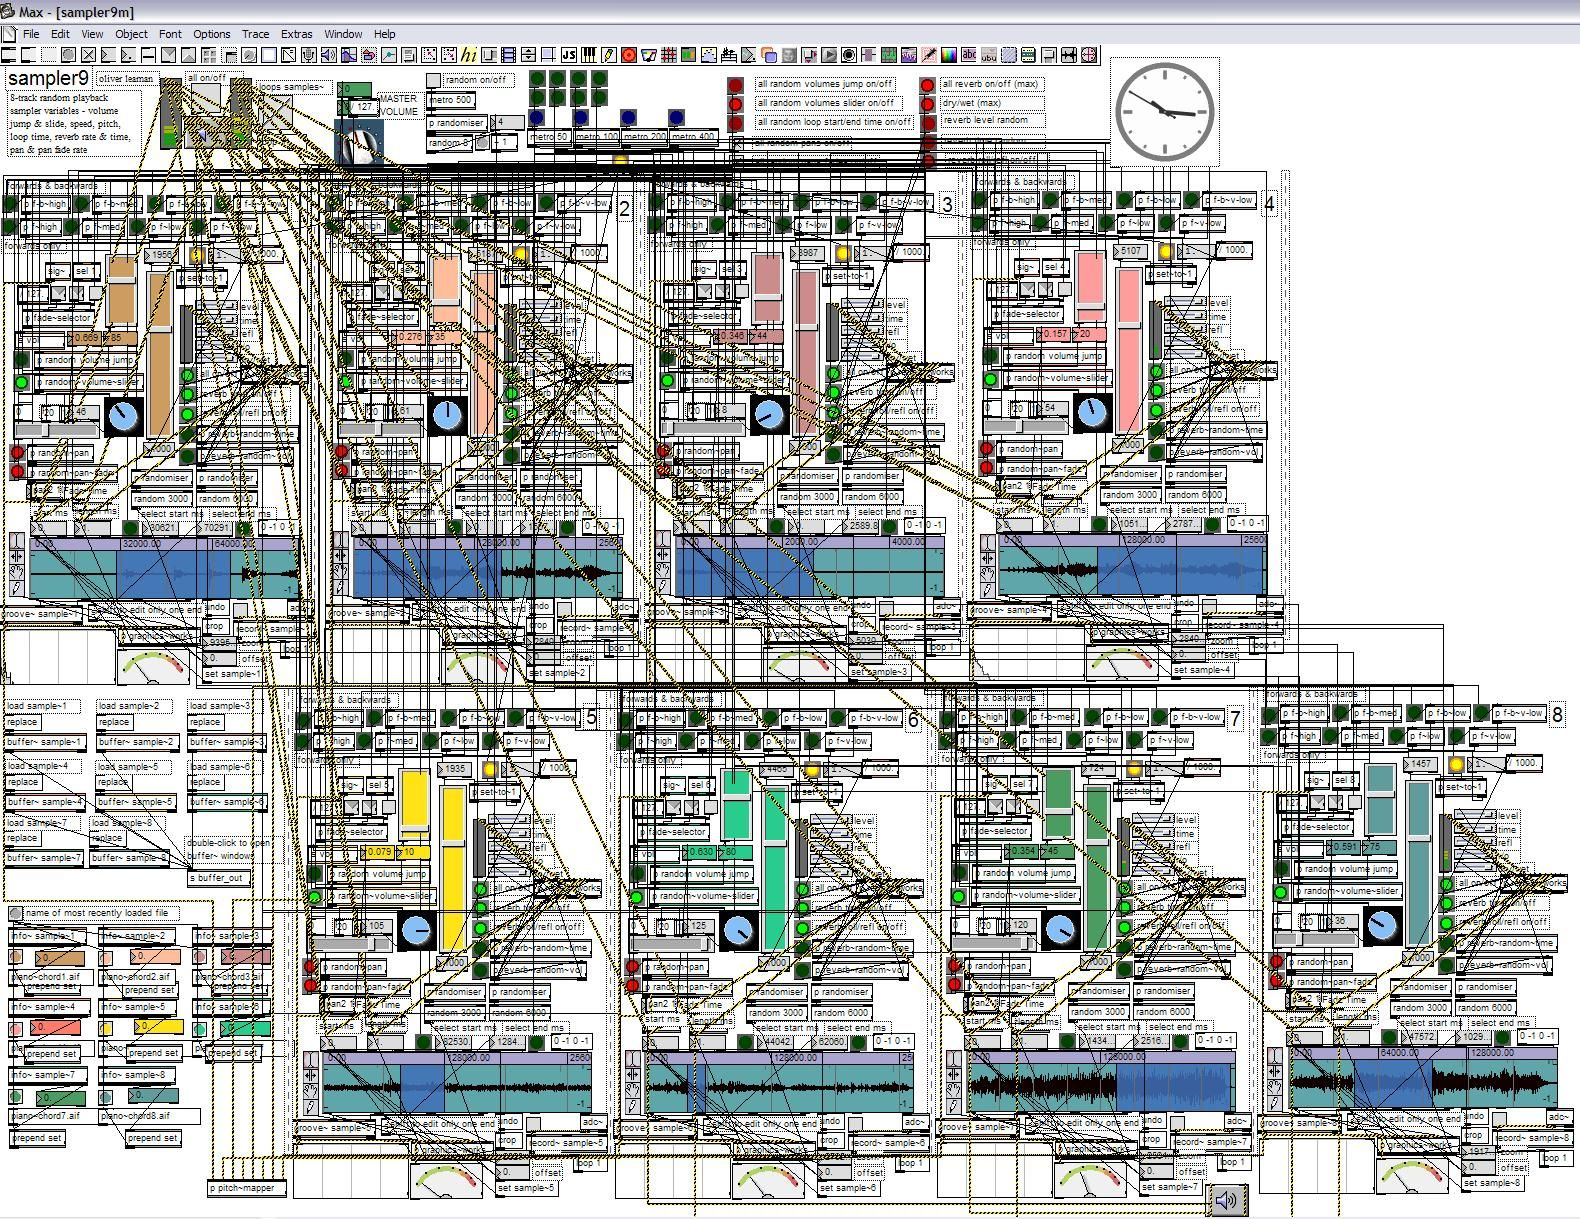 Max Msp Music Technology In 2018 Pinterest Electronic Supply Ucc28600 0 30v 5a Adjustable Smps Circuit Schematic